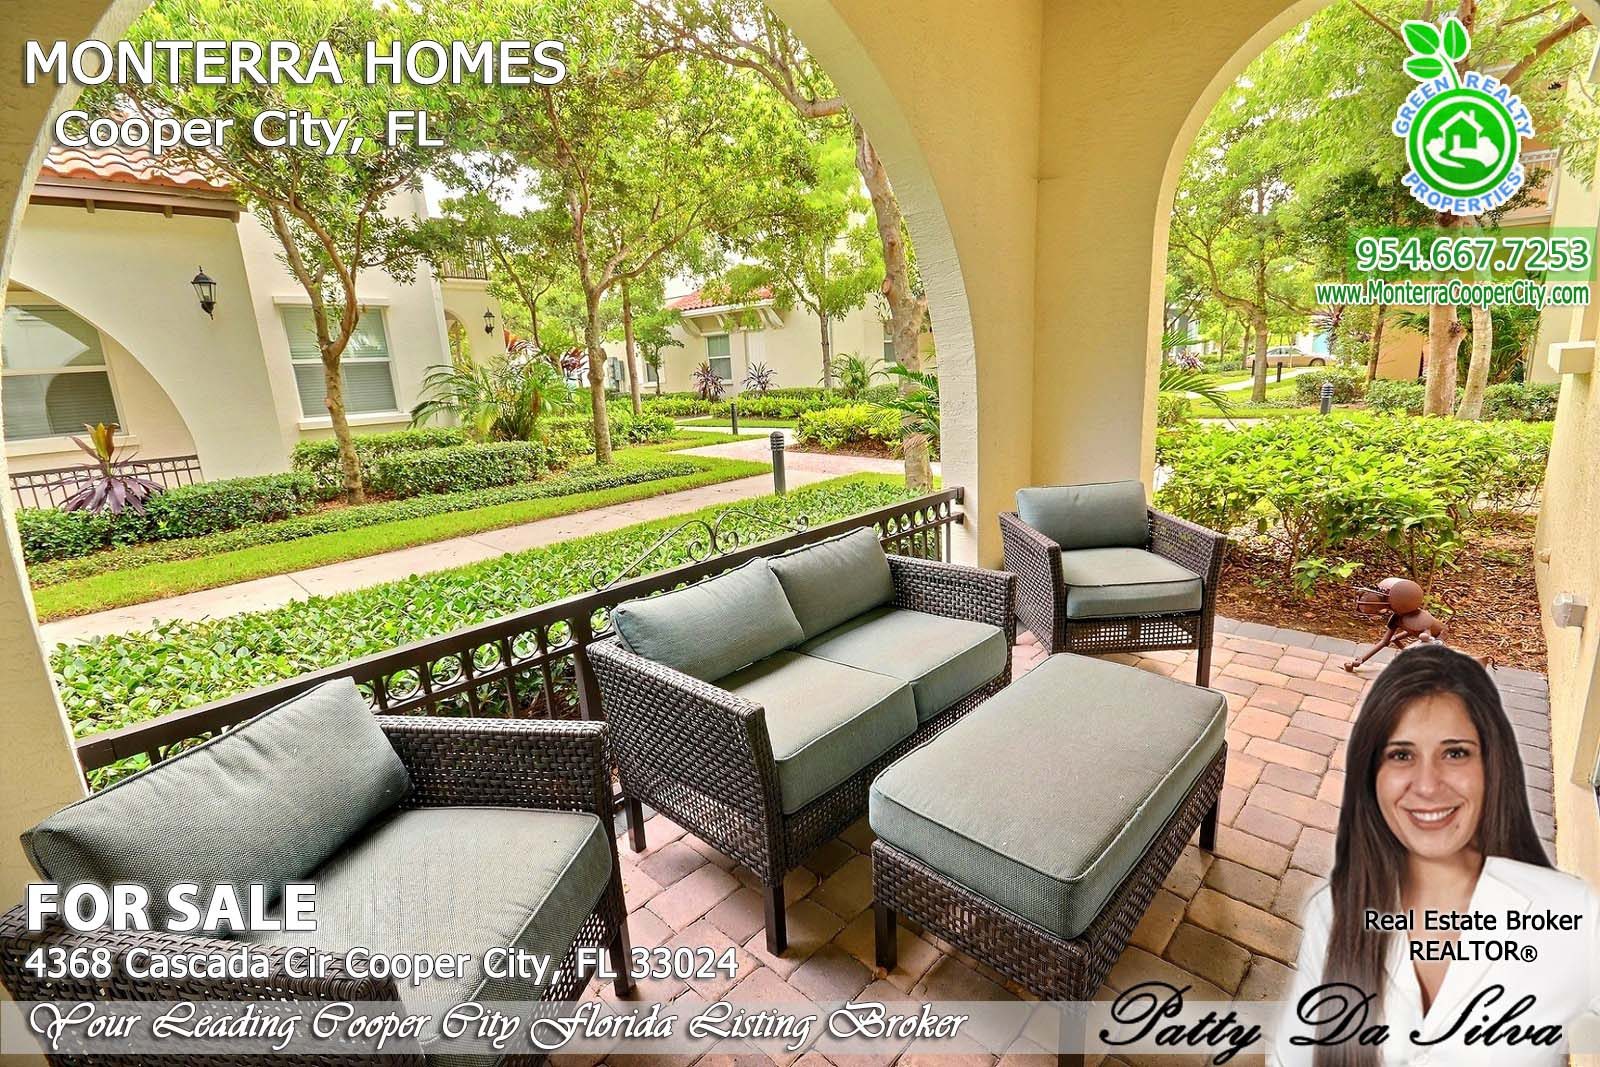 4368 Cascada Cir, Cooper City FL (13)